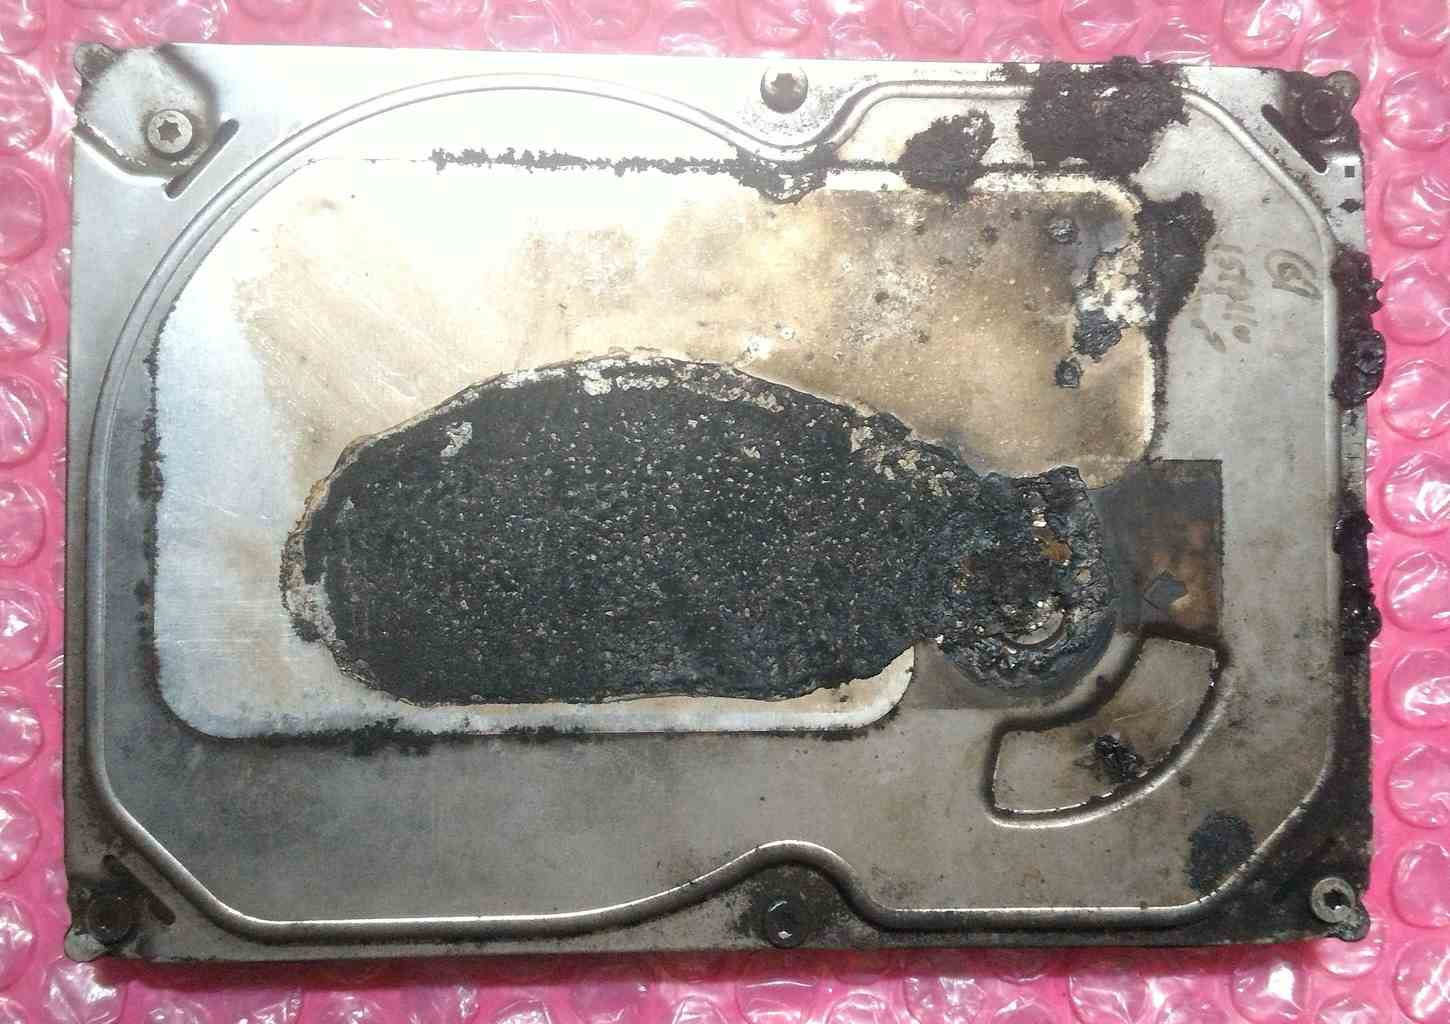 Burnt-fire-damaged-hard-drive-frontside1